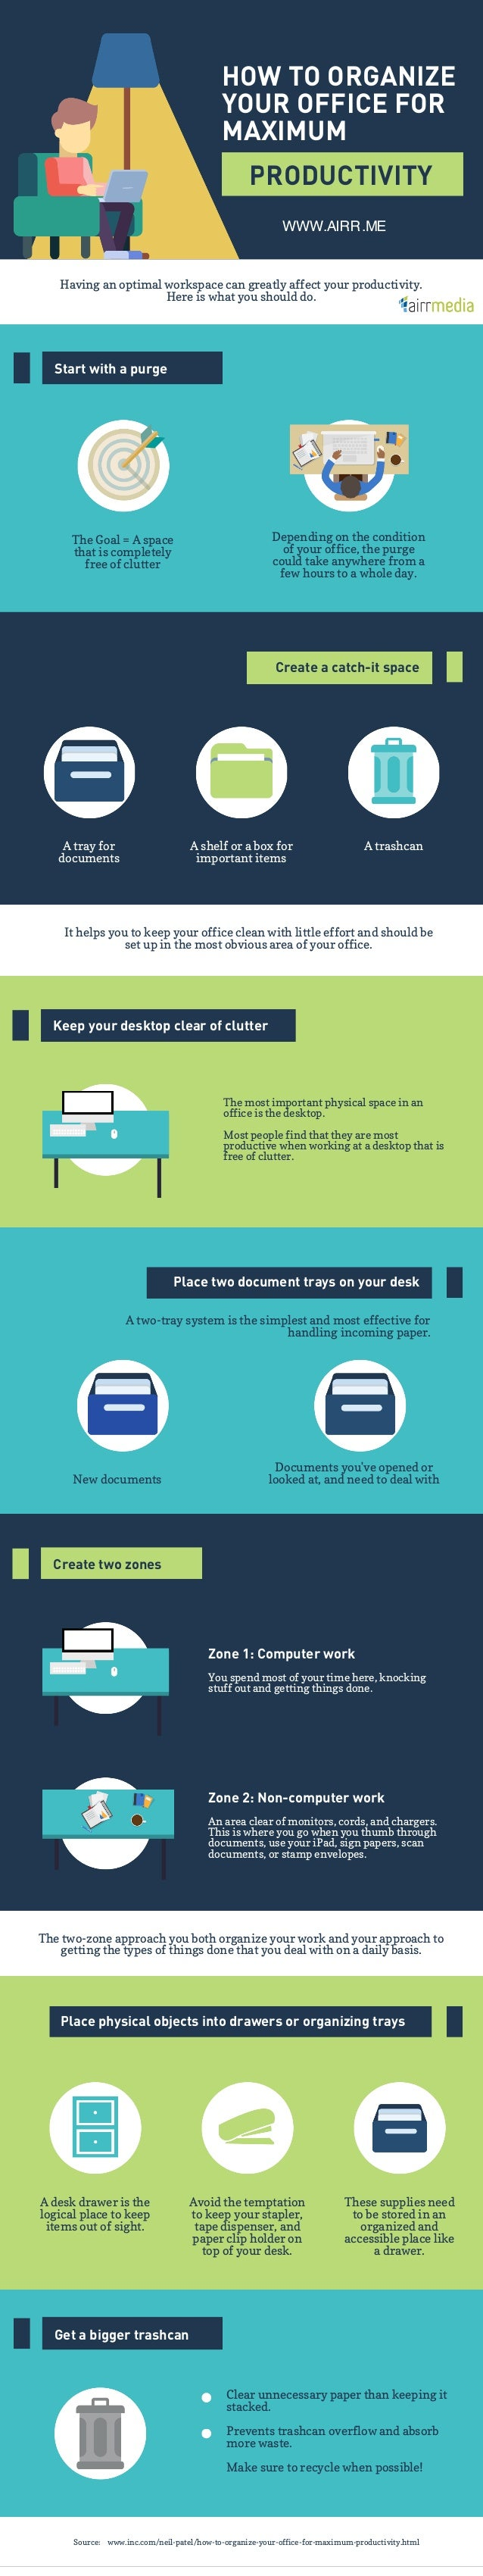 HOW TO ORGANIZE YOUR OFFICE FOR MAXIMUM PRODUCTIVITY Having an optimal workspace can greatly affect your productivity. Her...